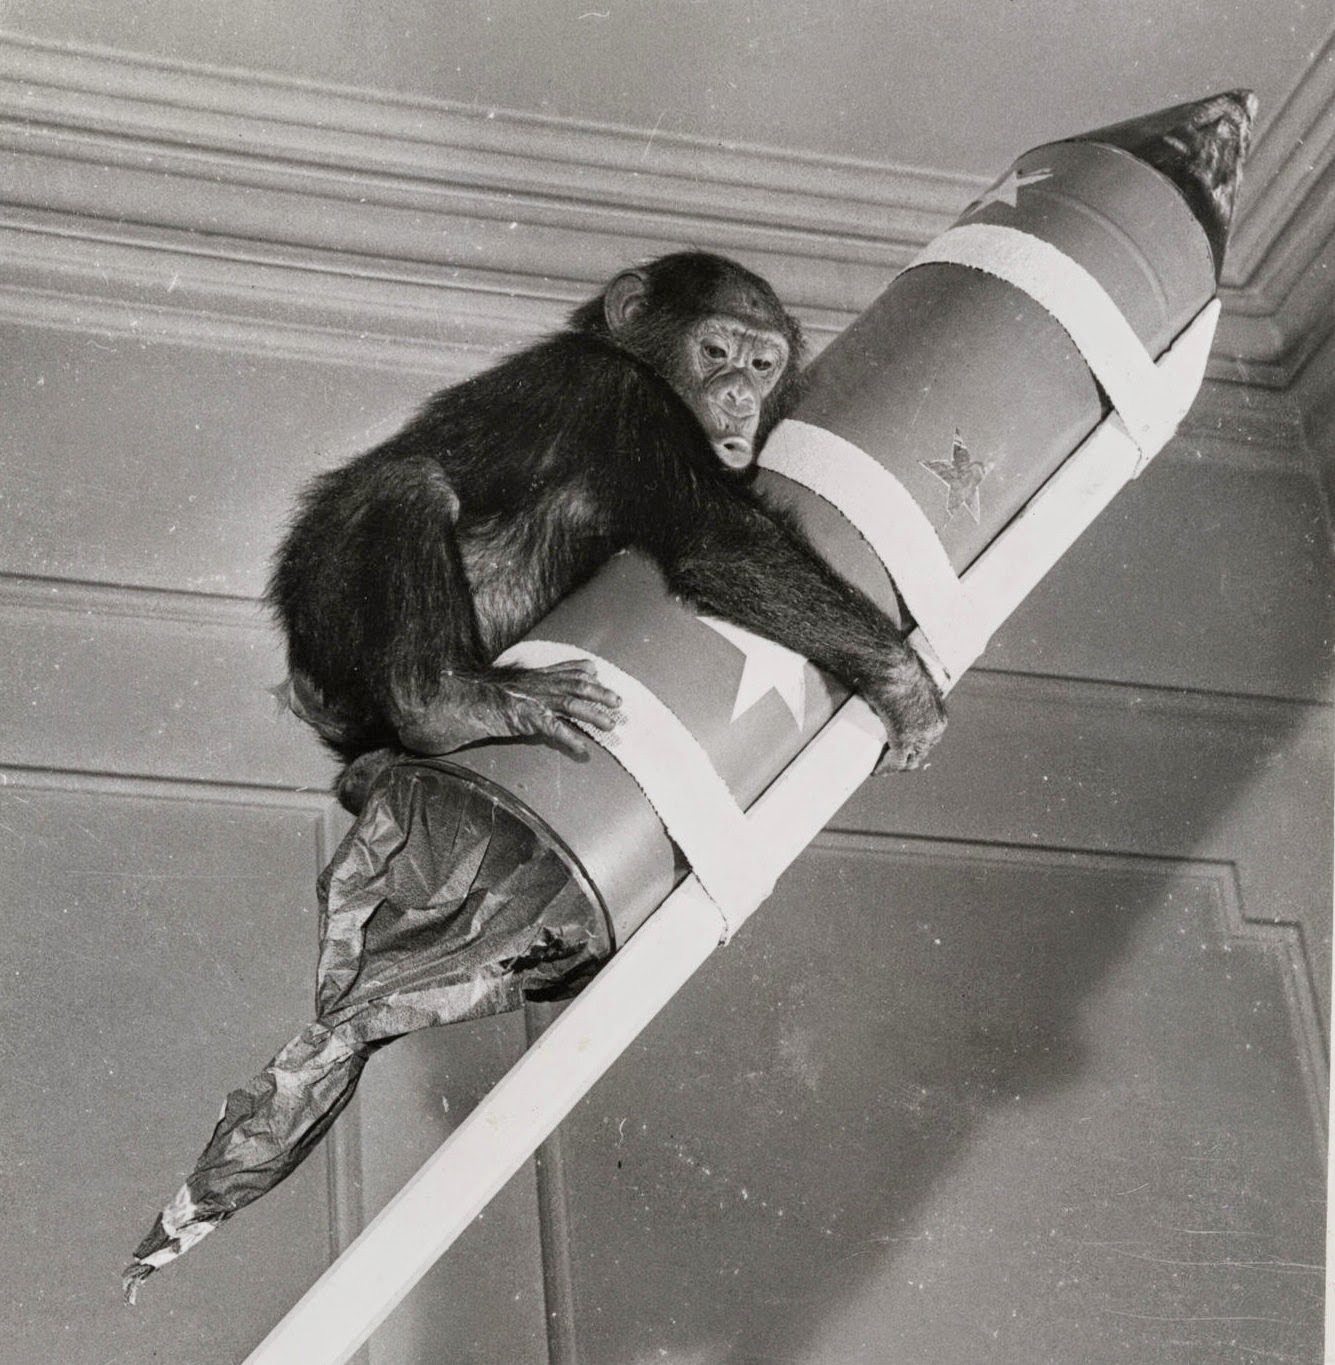 Chetham's Library: Space monkey